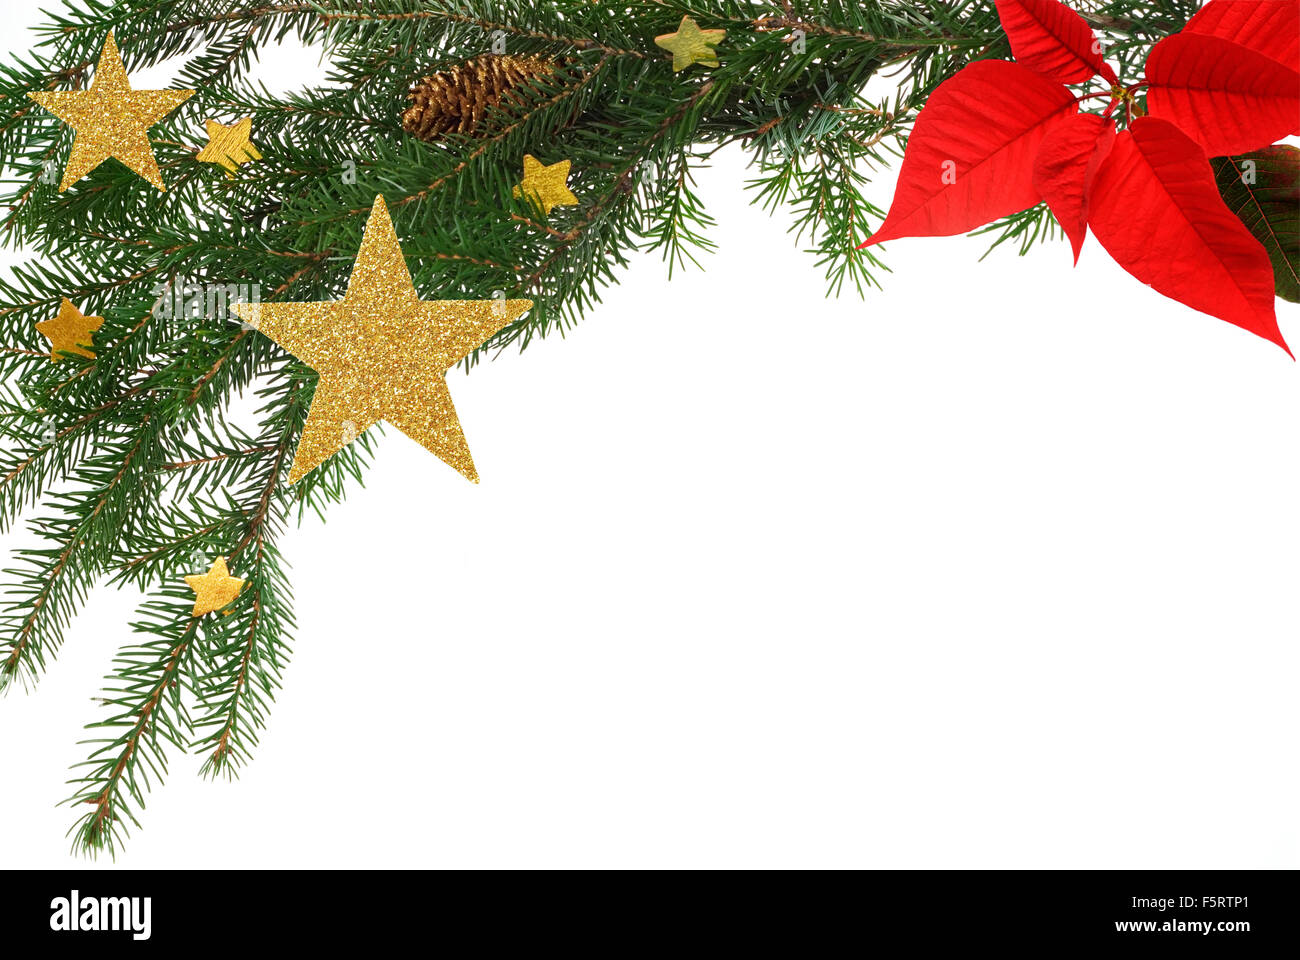 Chistmas greeting card background, bordered with fir twigs, stars and poinsettia - Stock Image